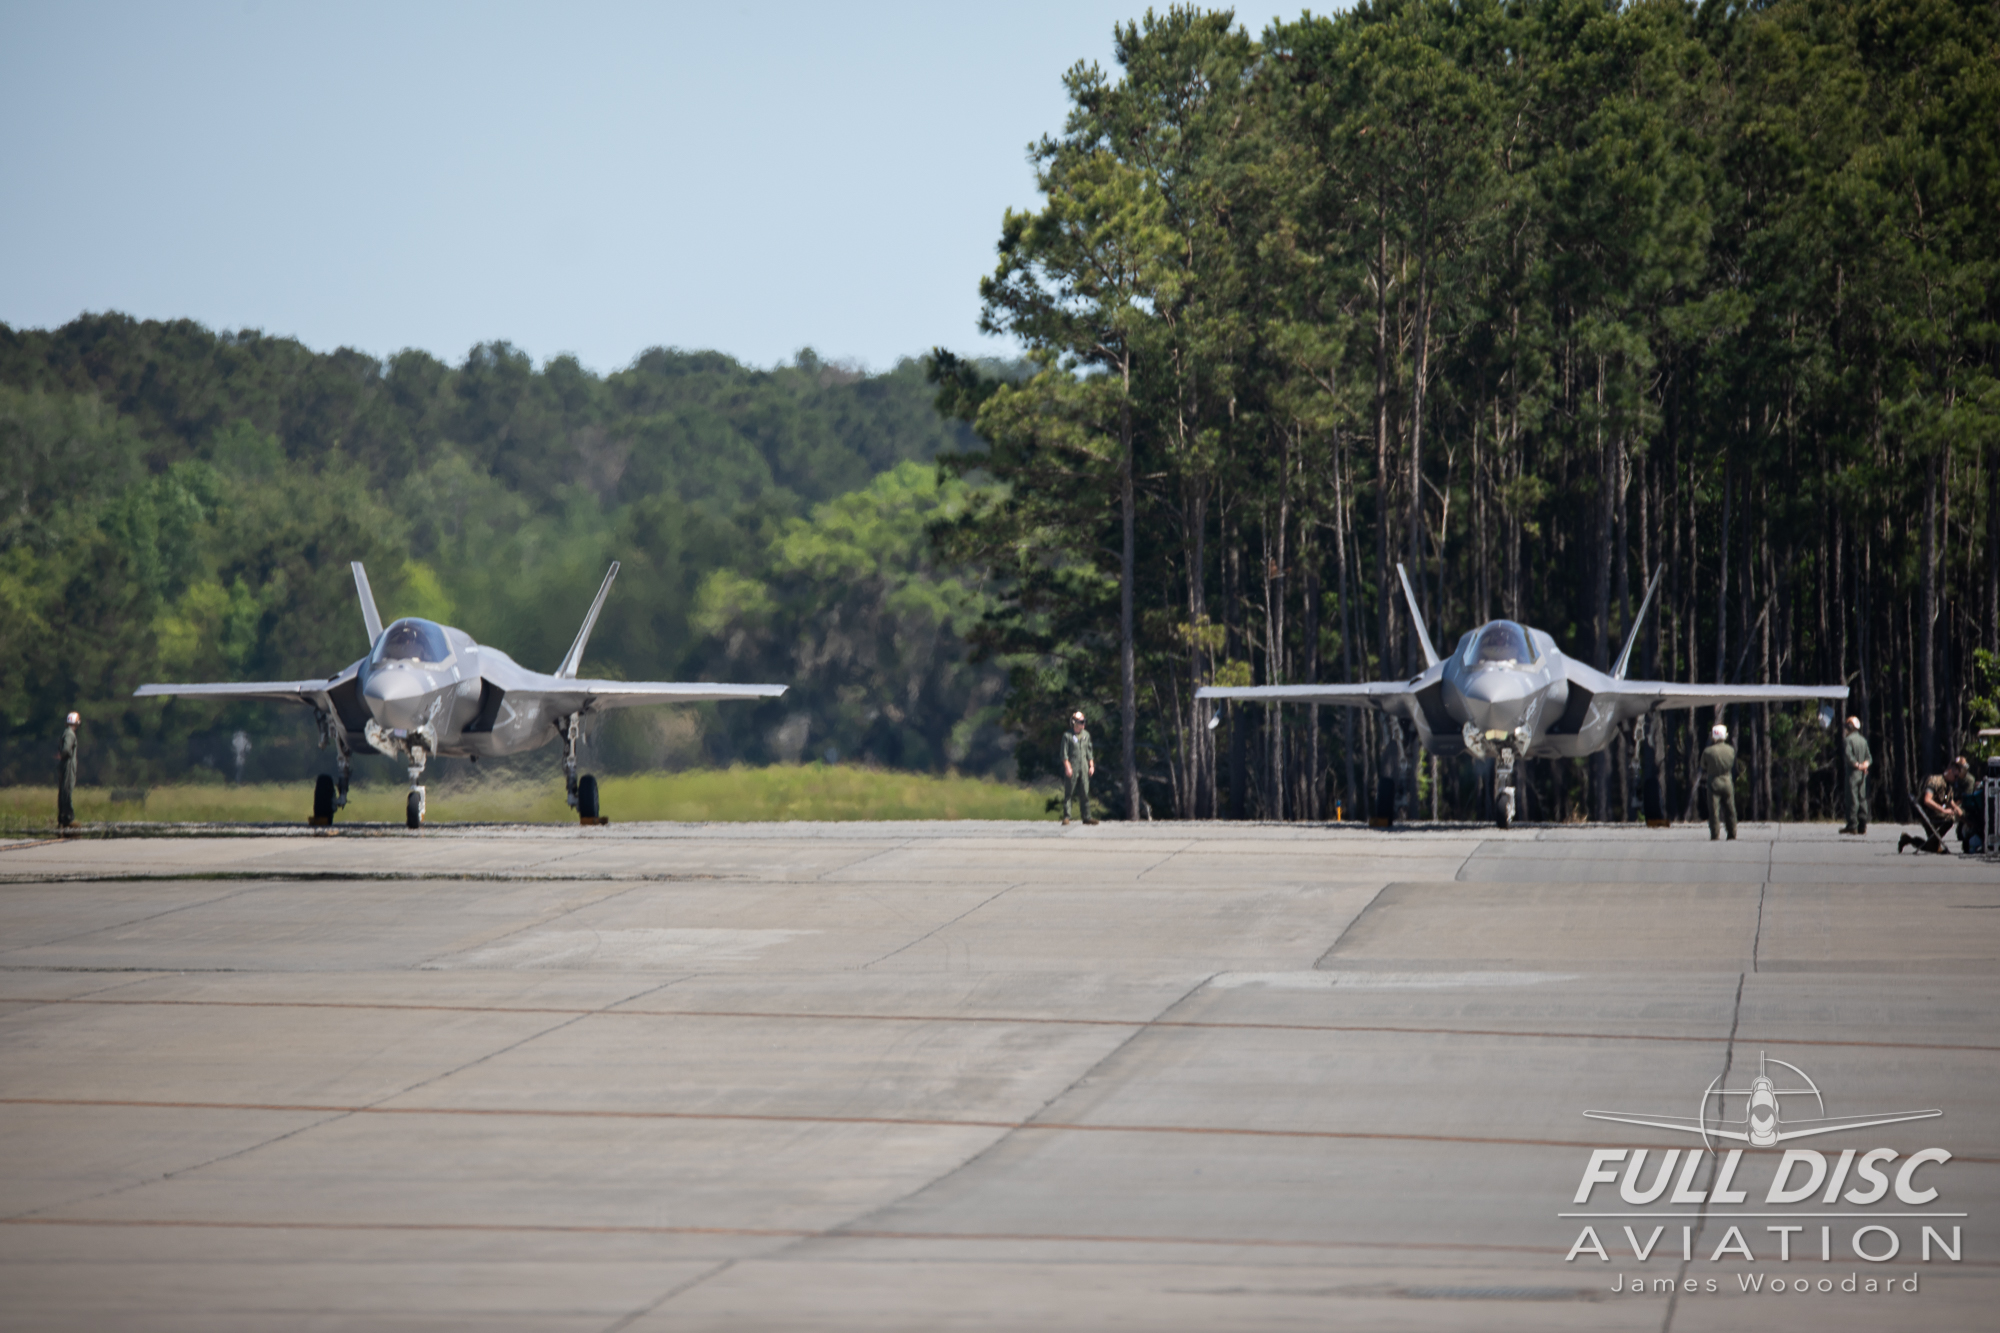 Full_Disc_Aviaiton _James_Woodard_MCAS_Beaufort-April 27, 2019-25.jpg